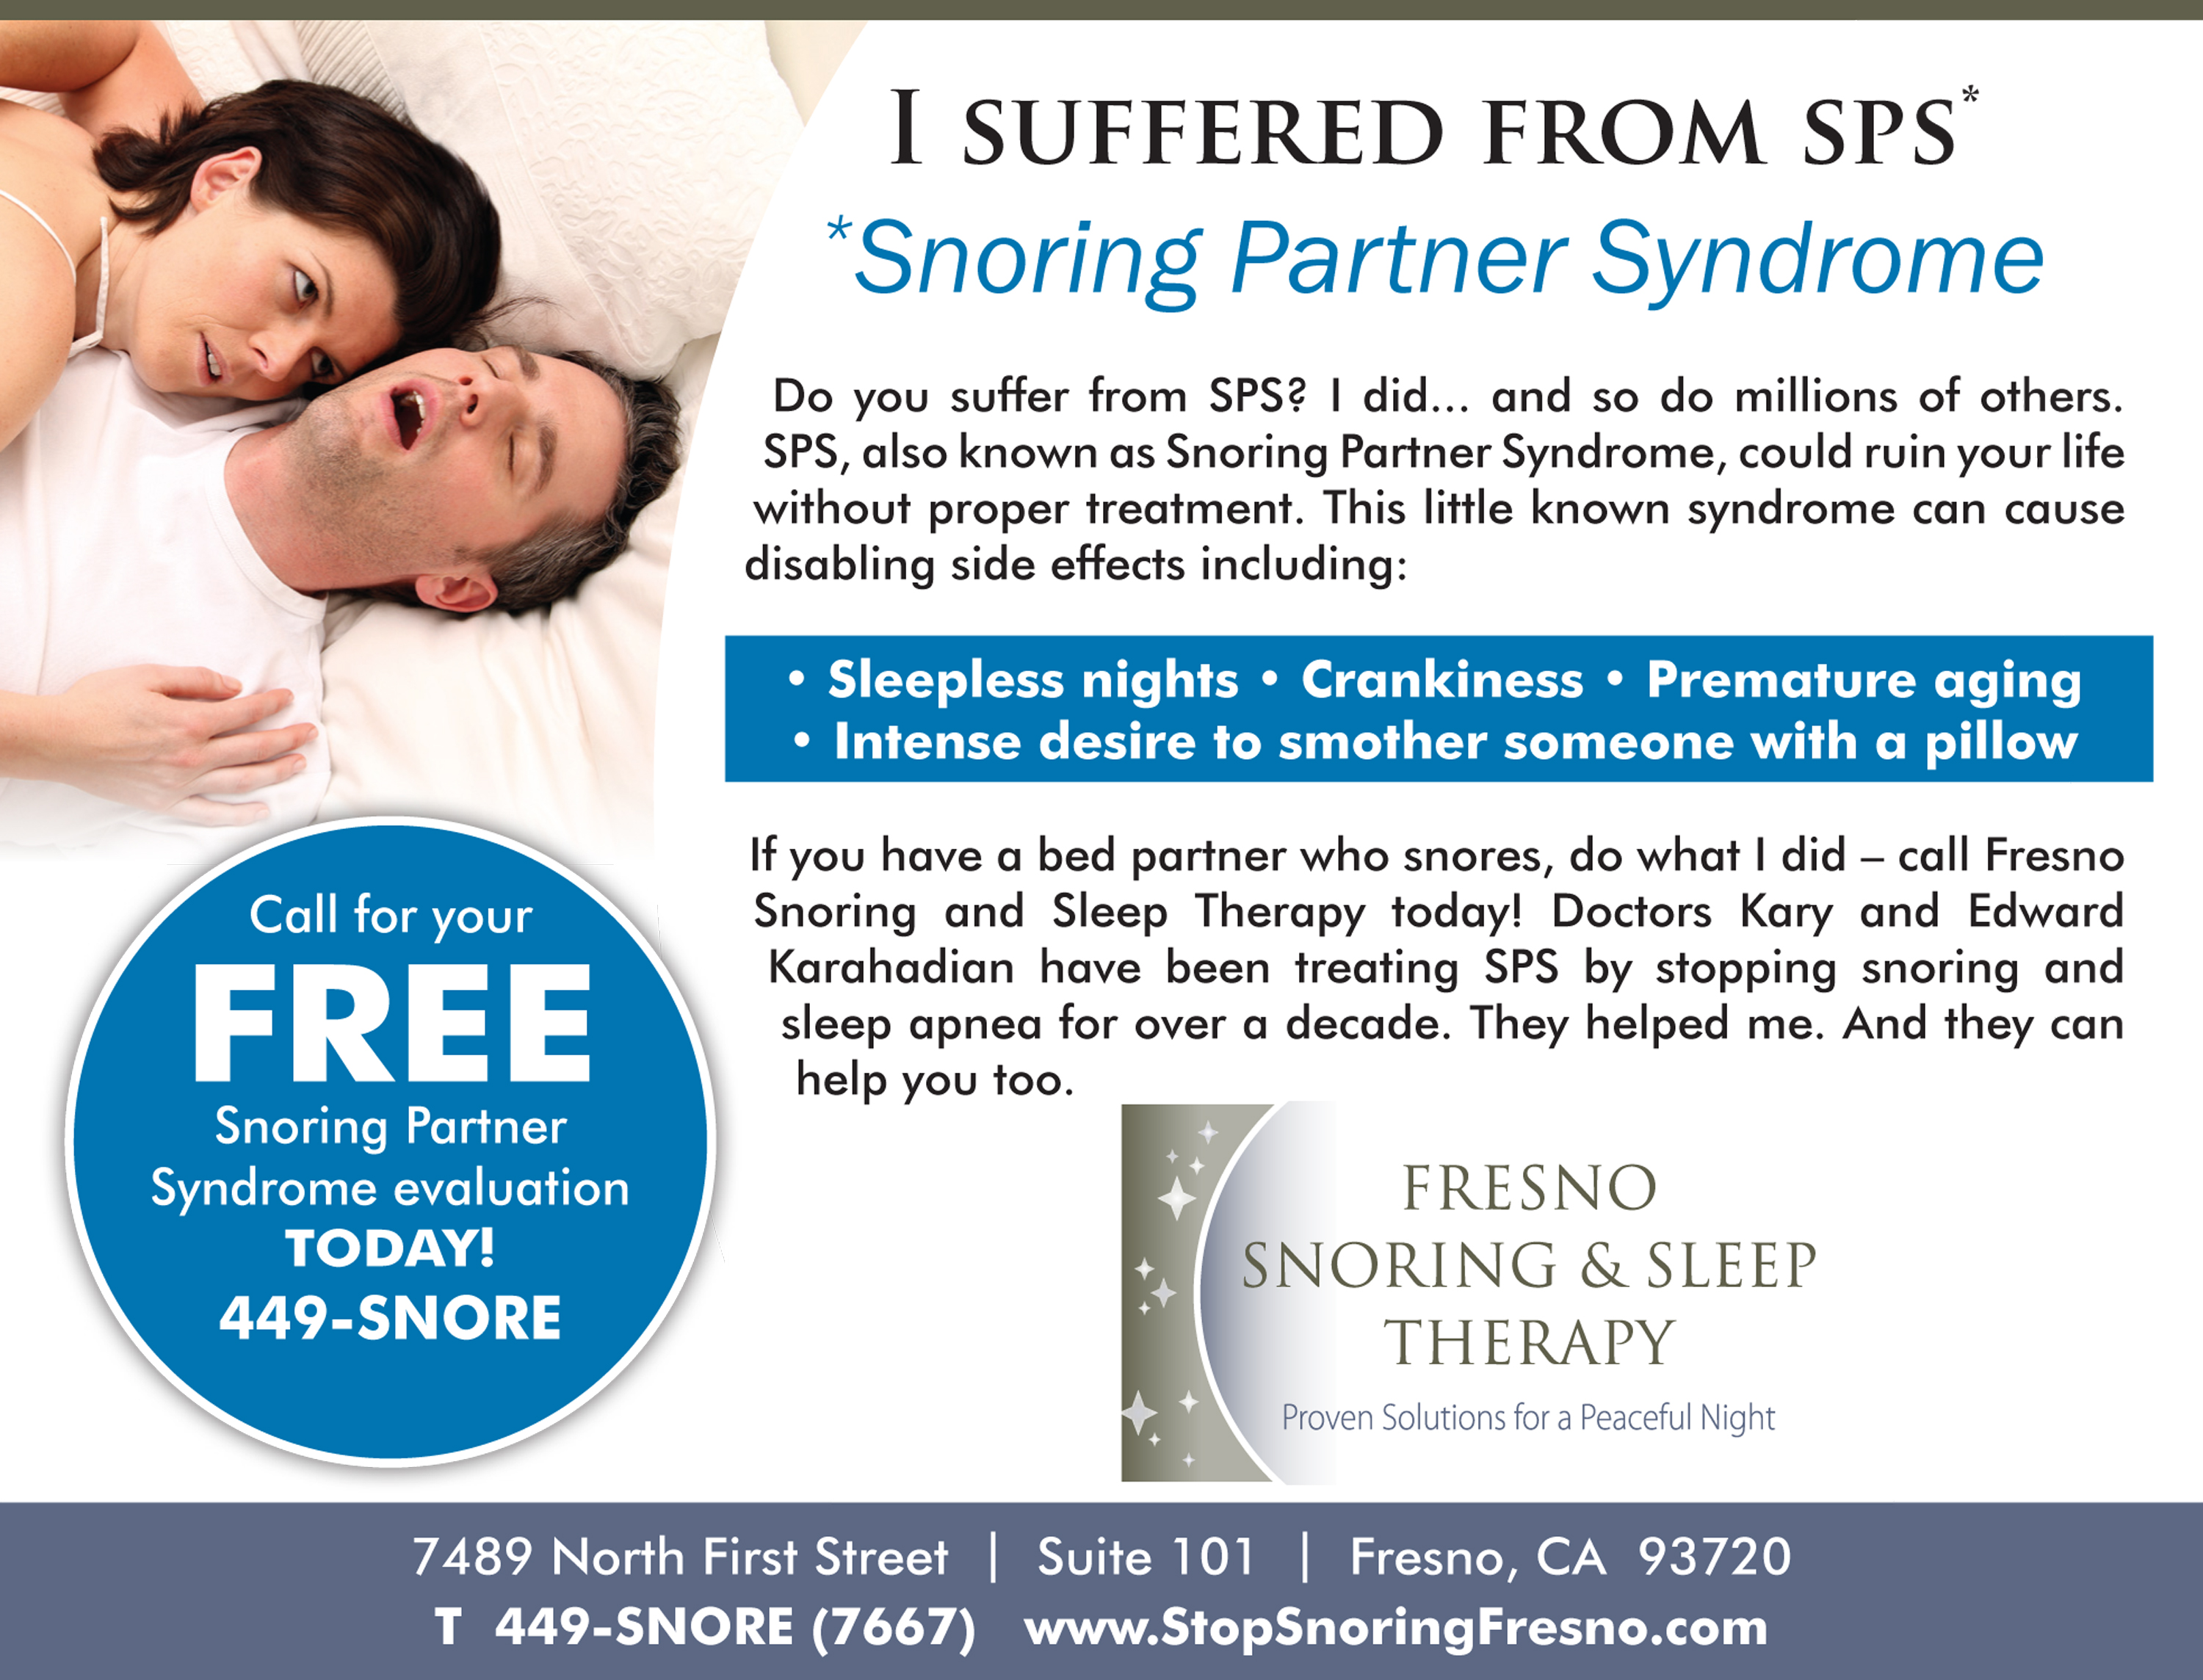 Snoring Partner Syndrome